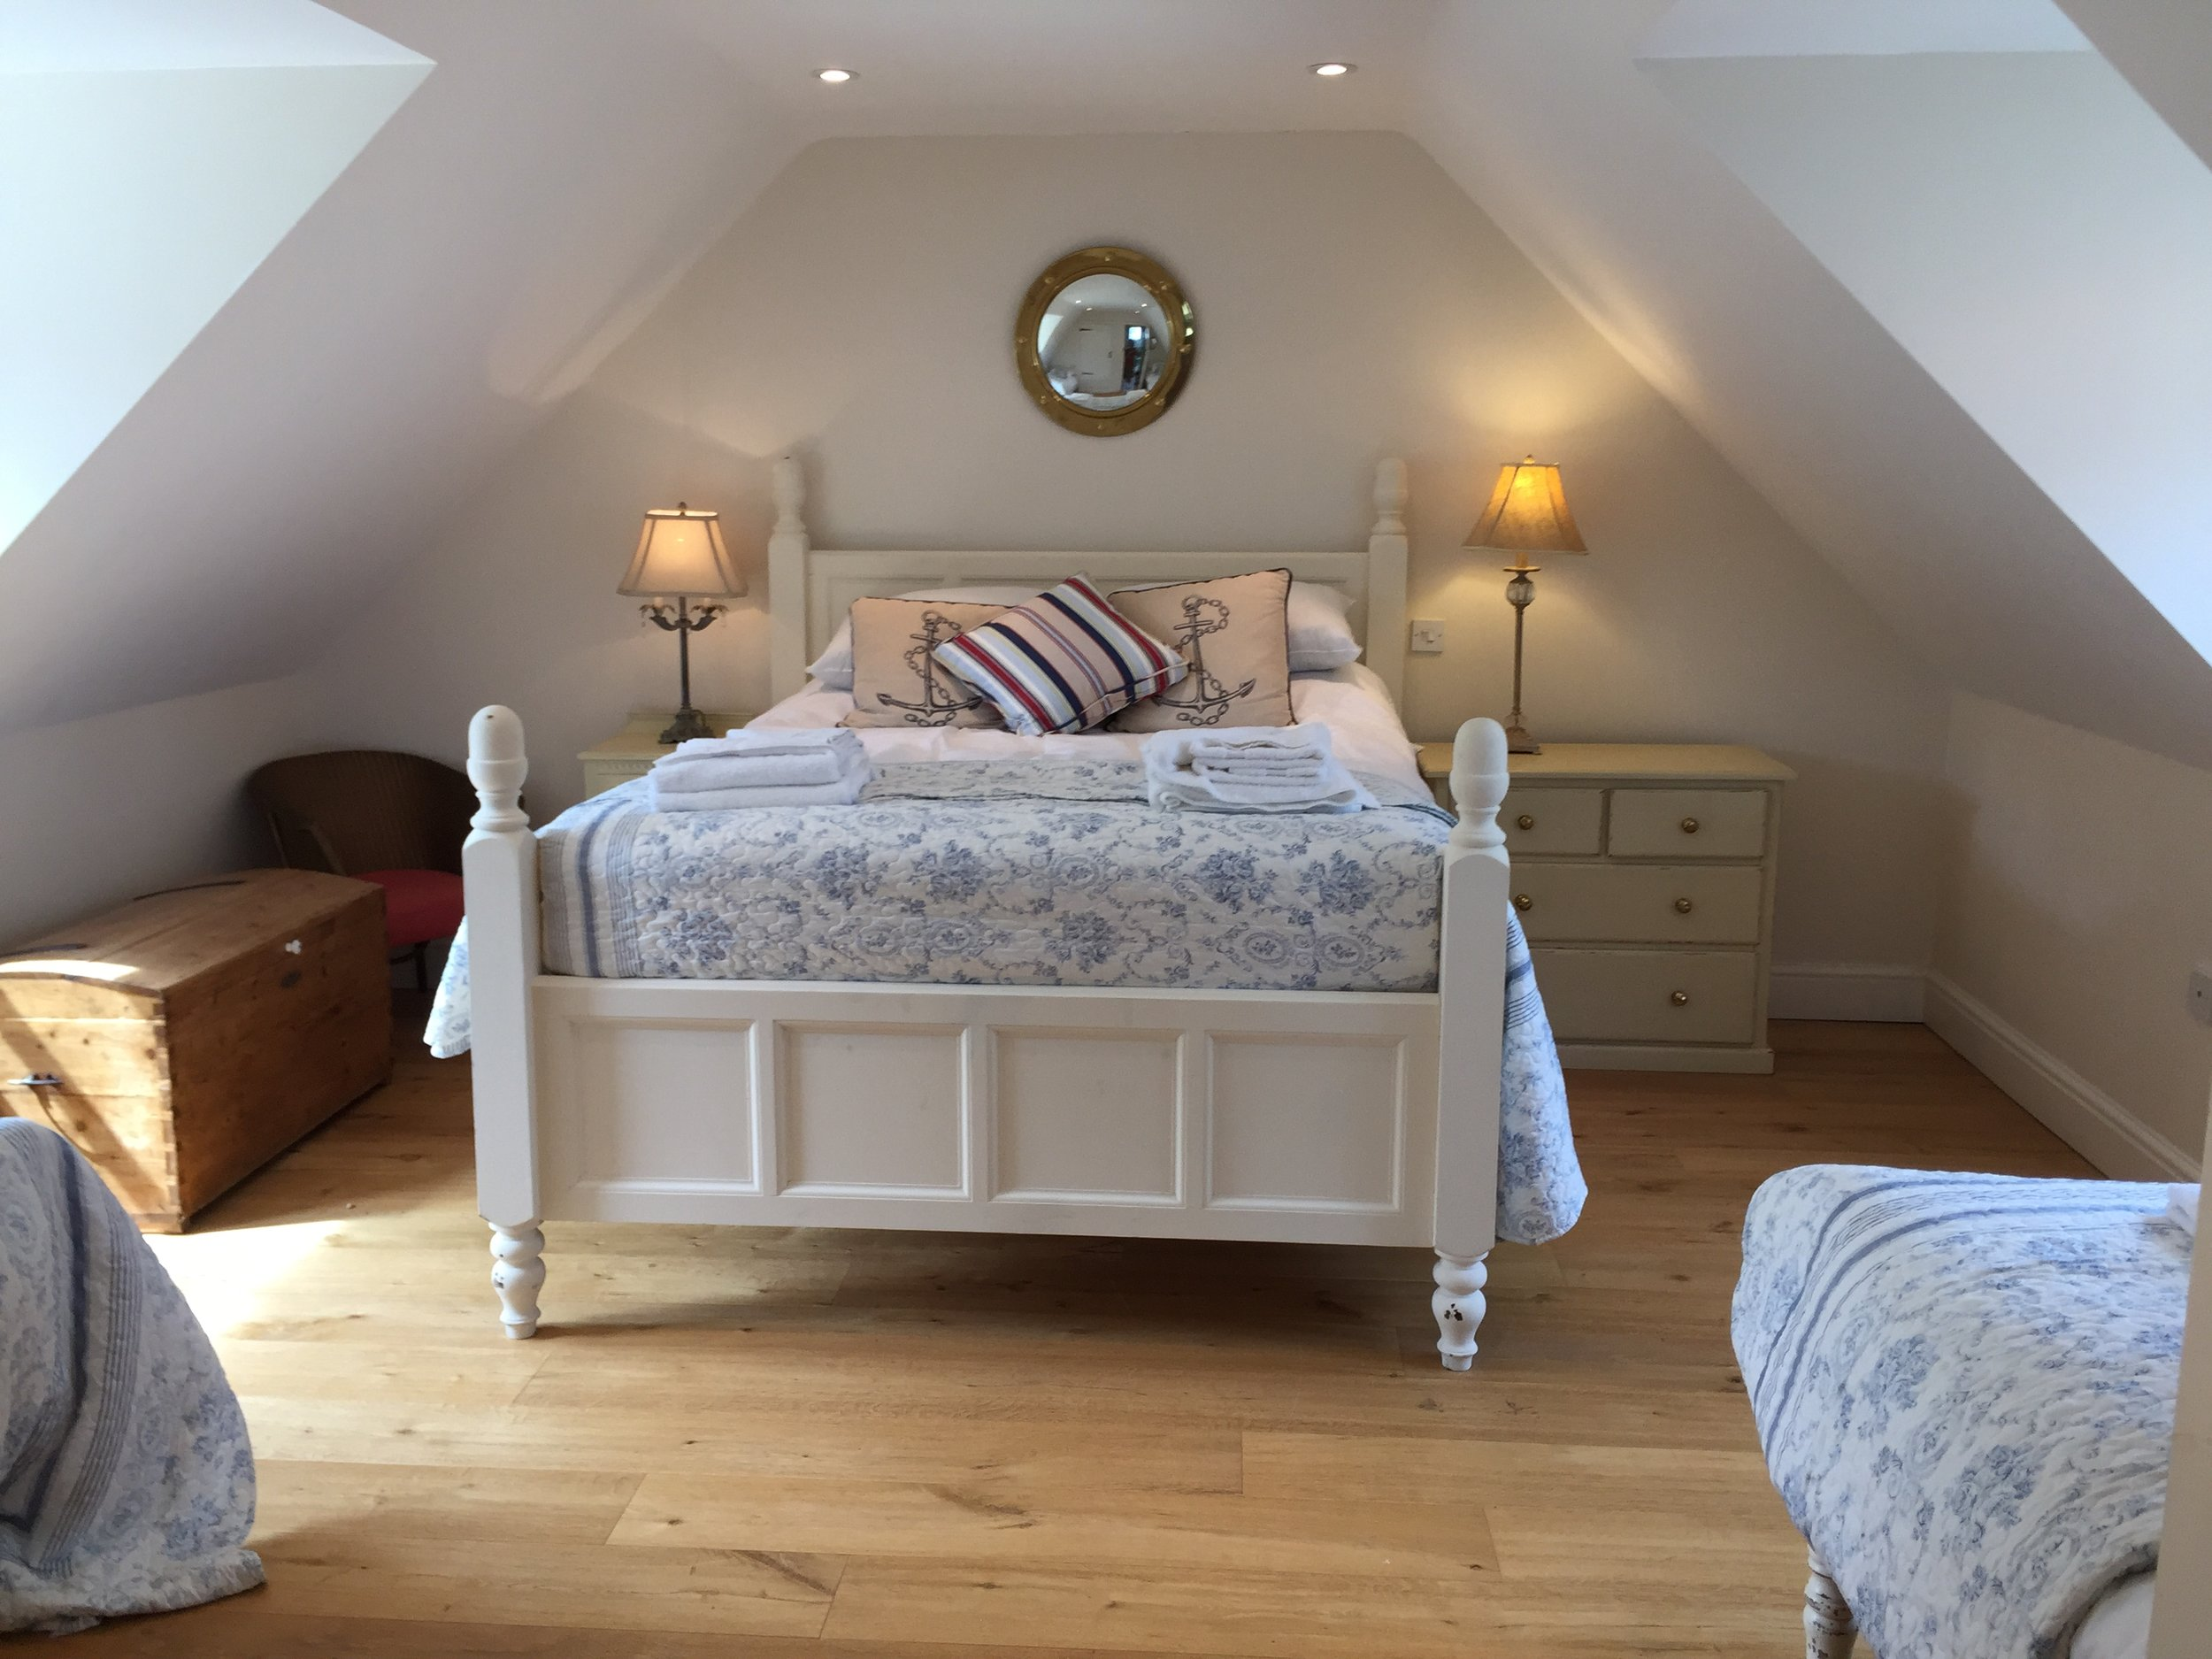 Holiday cottages Norfolk with family bedroom